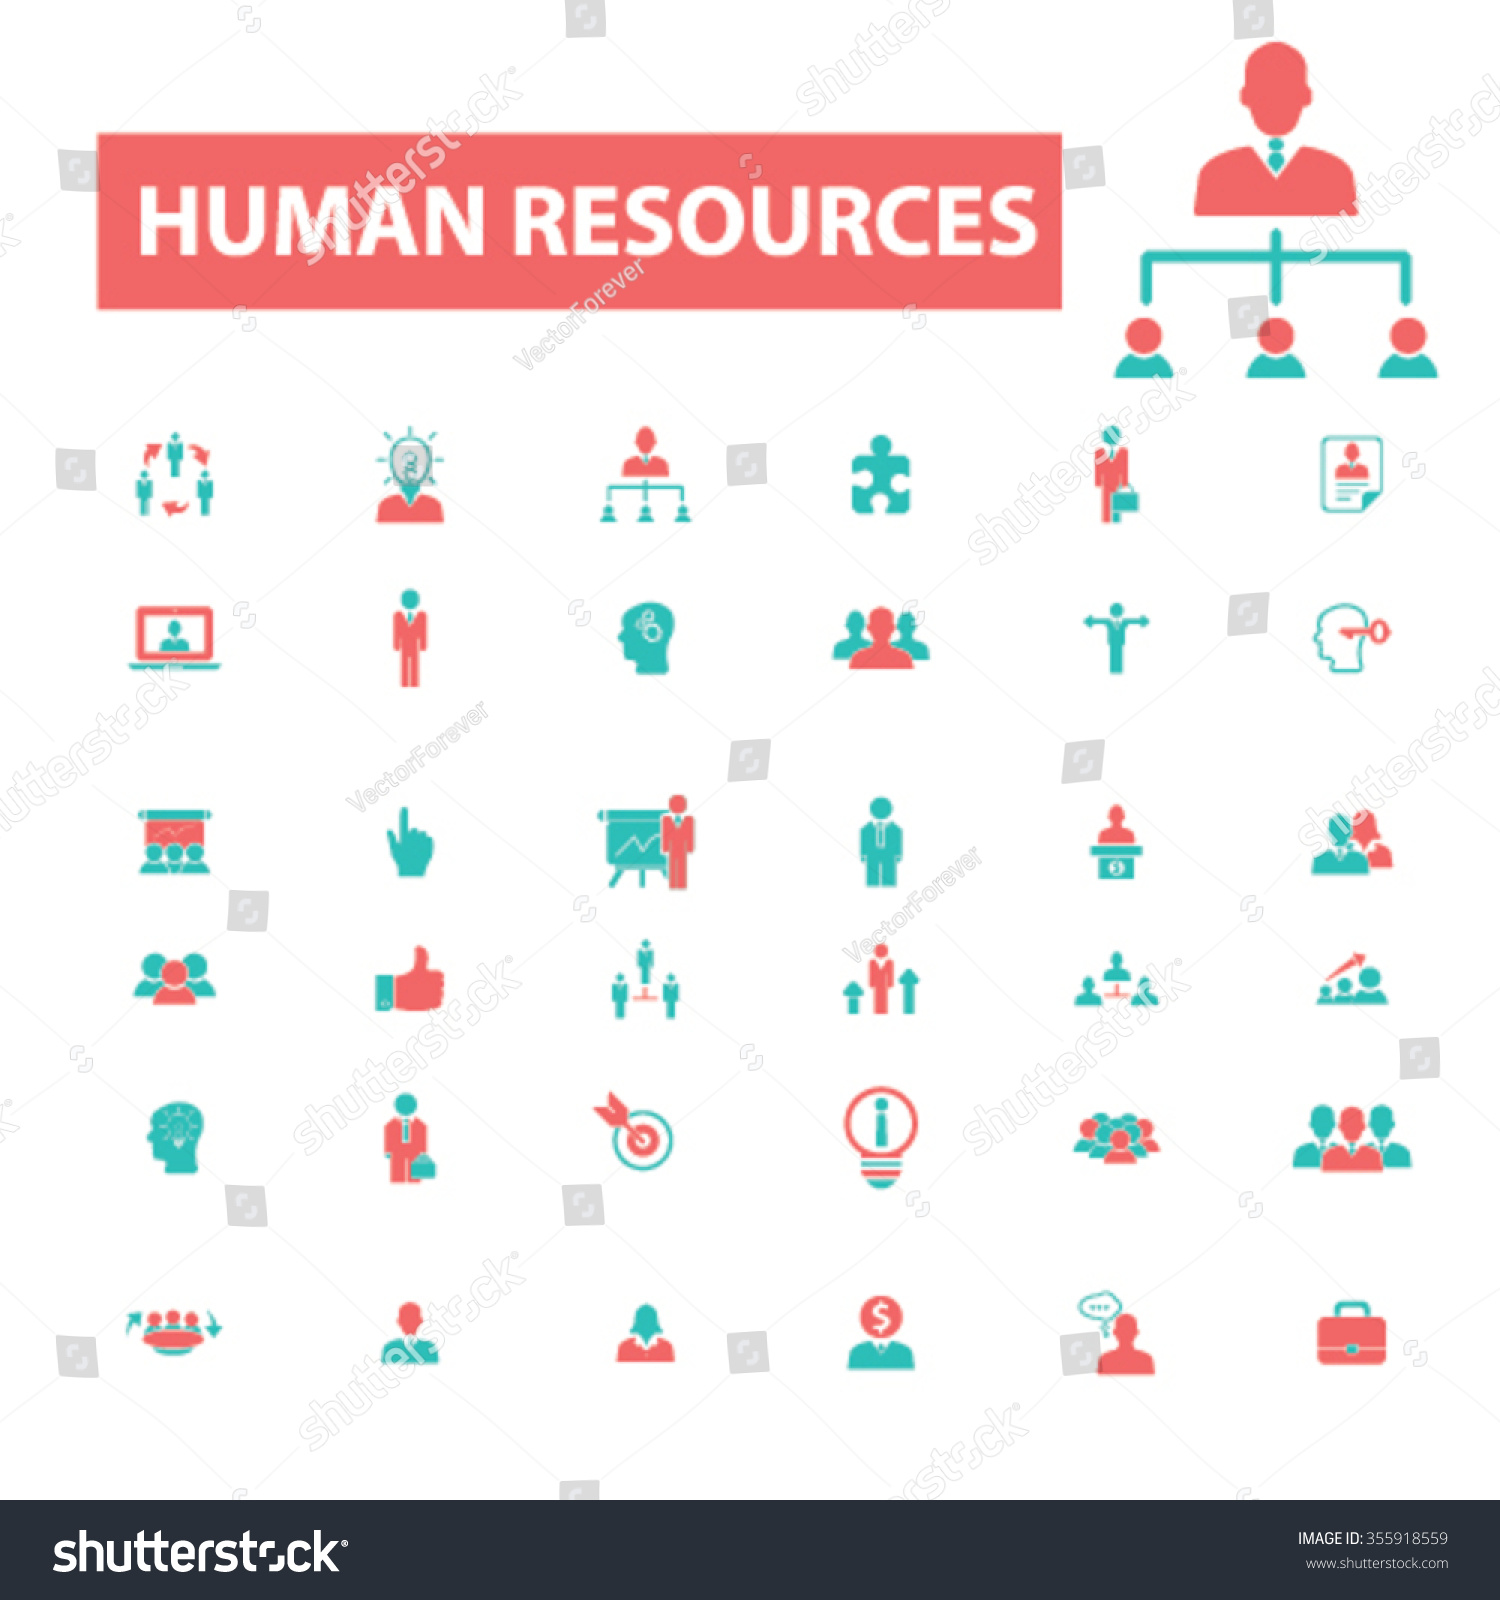 human resources organization businessman management icons